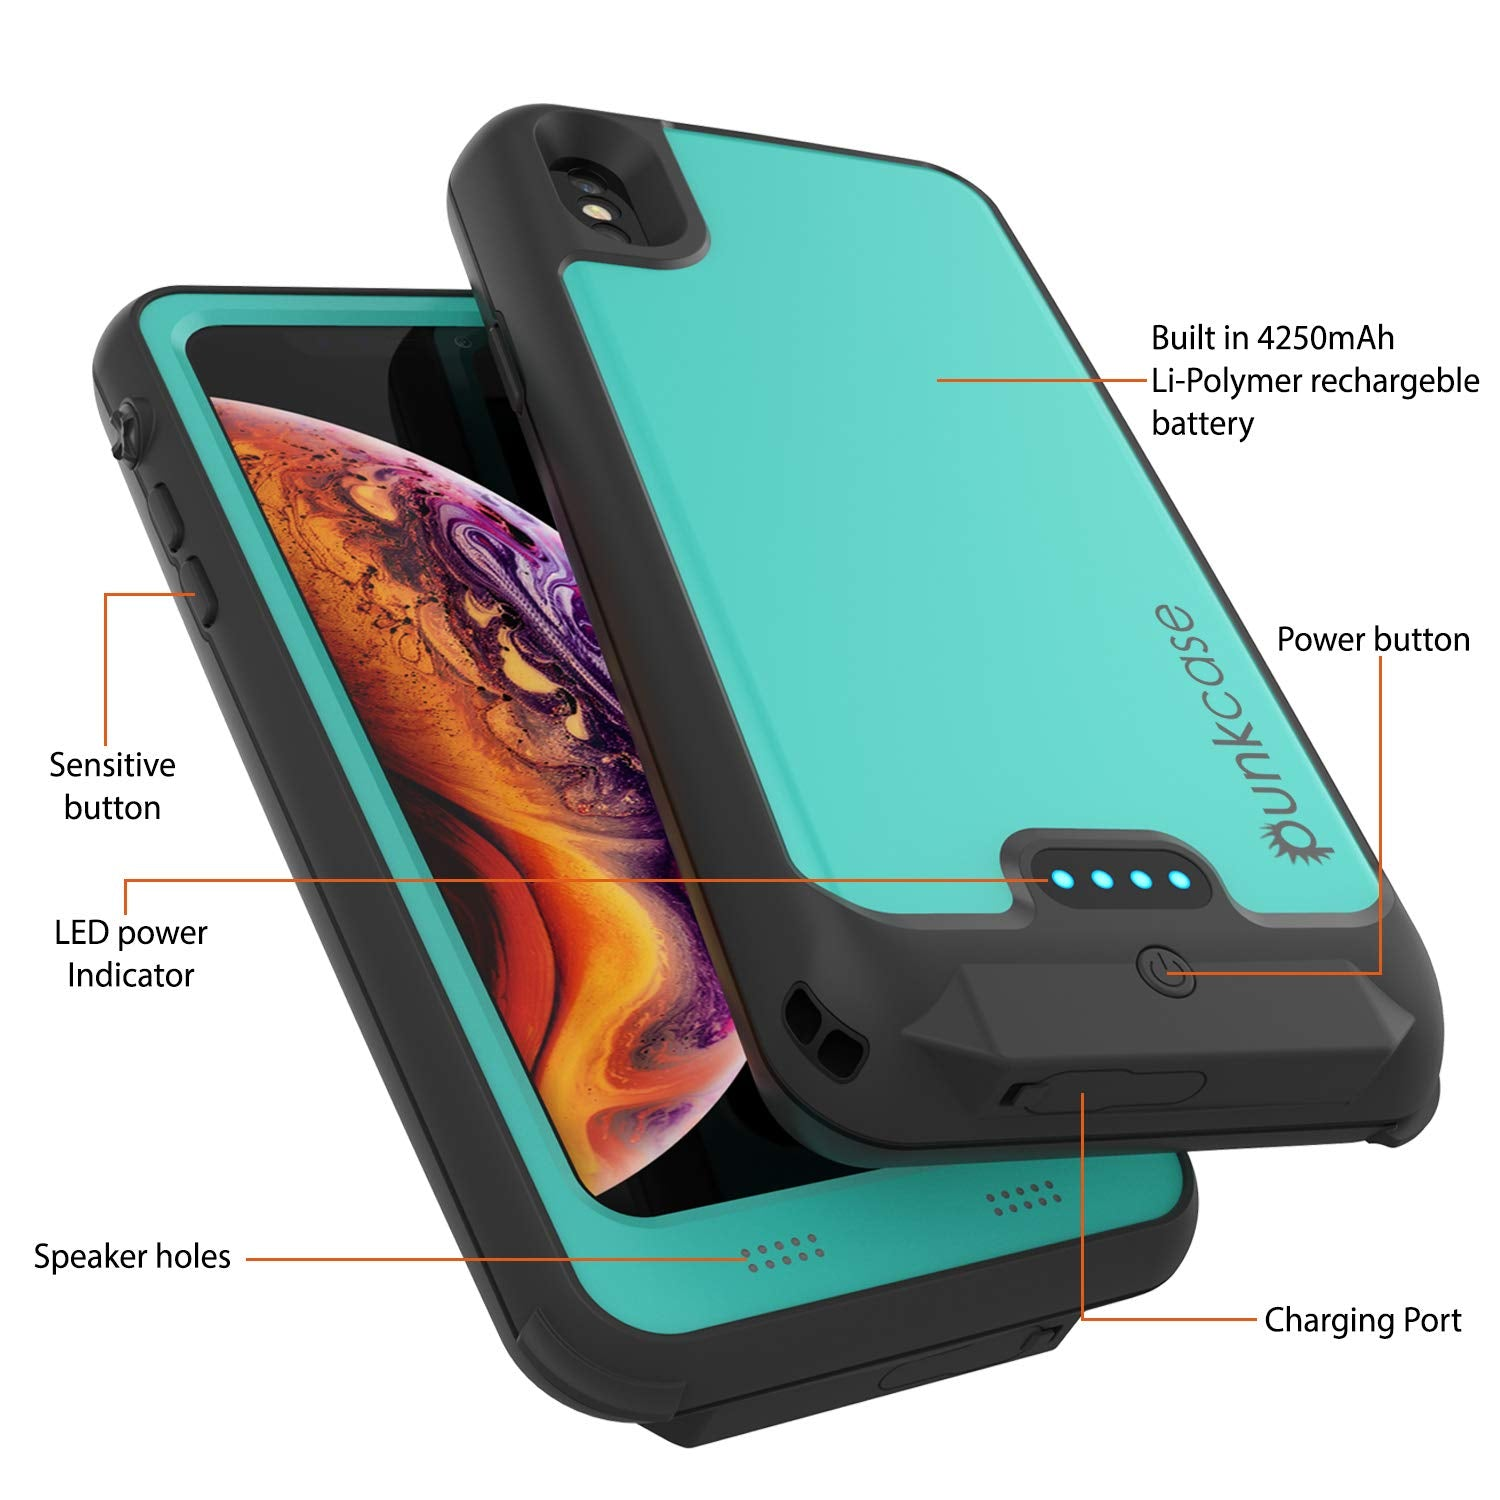 PunkJuice iPhone XS Battery Case, Waterproof, IP68 Certified [Ultra Slim] [Teal]